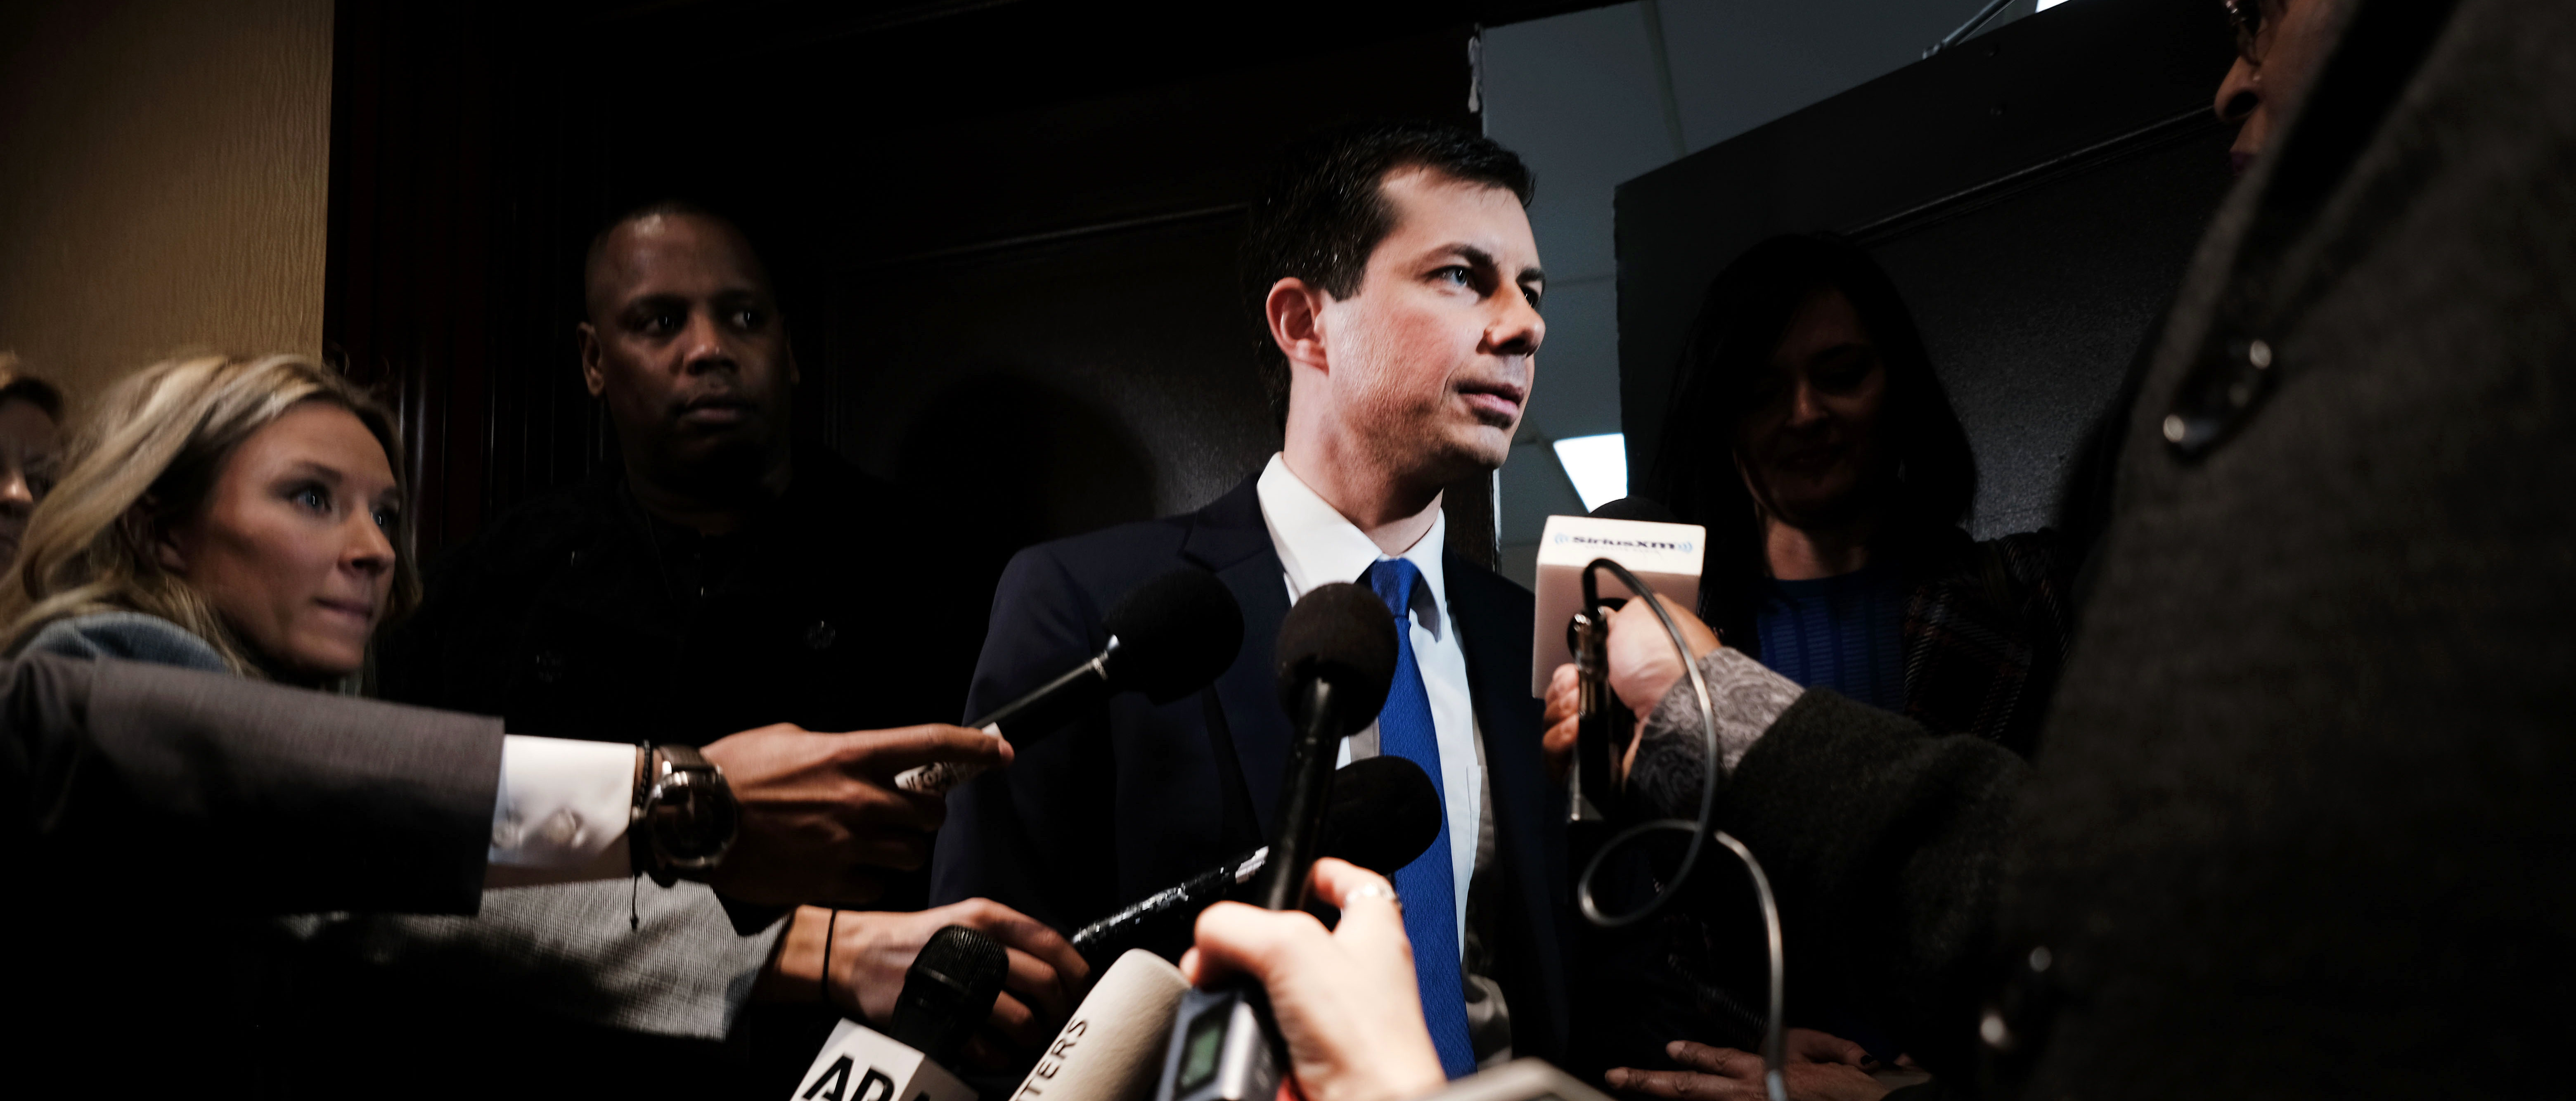 NEW YORK, NEW YORK - APRIL 04: Democratic presidential hopeful South Bend, Indiana mayor Pete Buttigieg speaks to the media at the National Action Network's annual convention on April 4, 2019 in New York City. A dozen 2020 Democratic presidential candidates will speak at the organization's convention this week. Founded by Rev. Al Sharpton in 1991, the National Action Network is one of the most influential African American organizations dedicated to civil rights in America. (Photo by Spencer Platt/Getty Images)